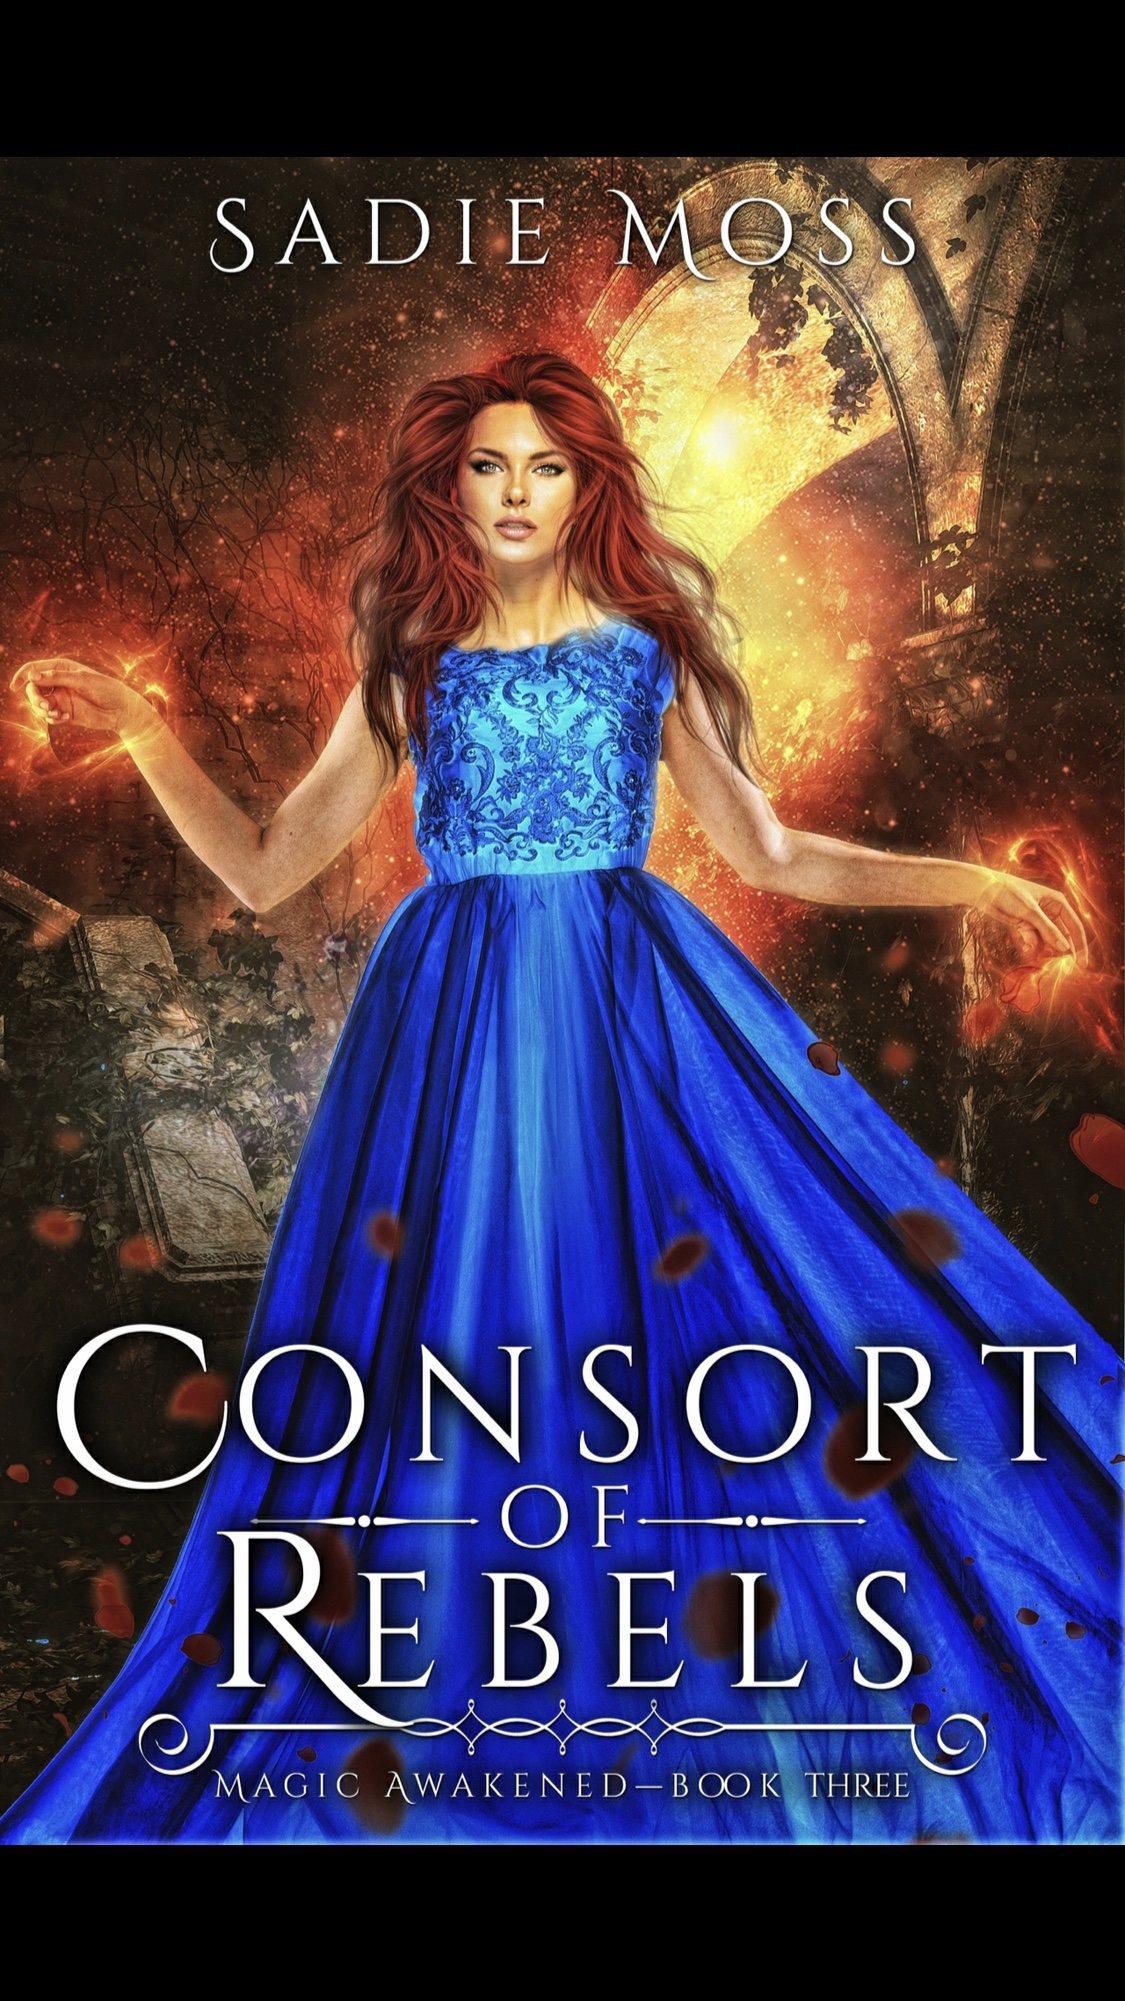 Consort of rebels by Sadie Moss – Book Review